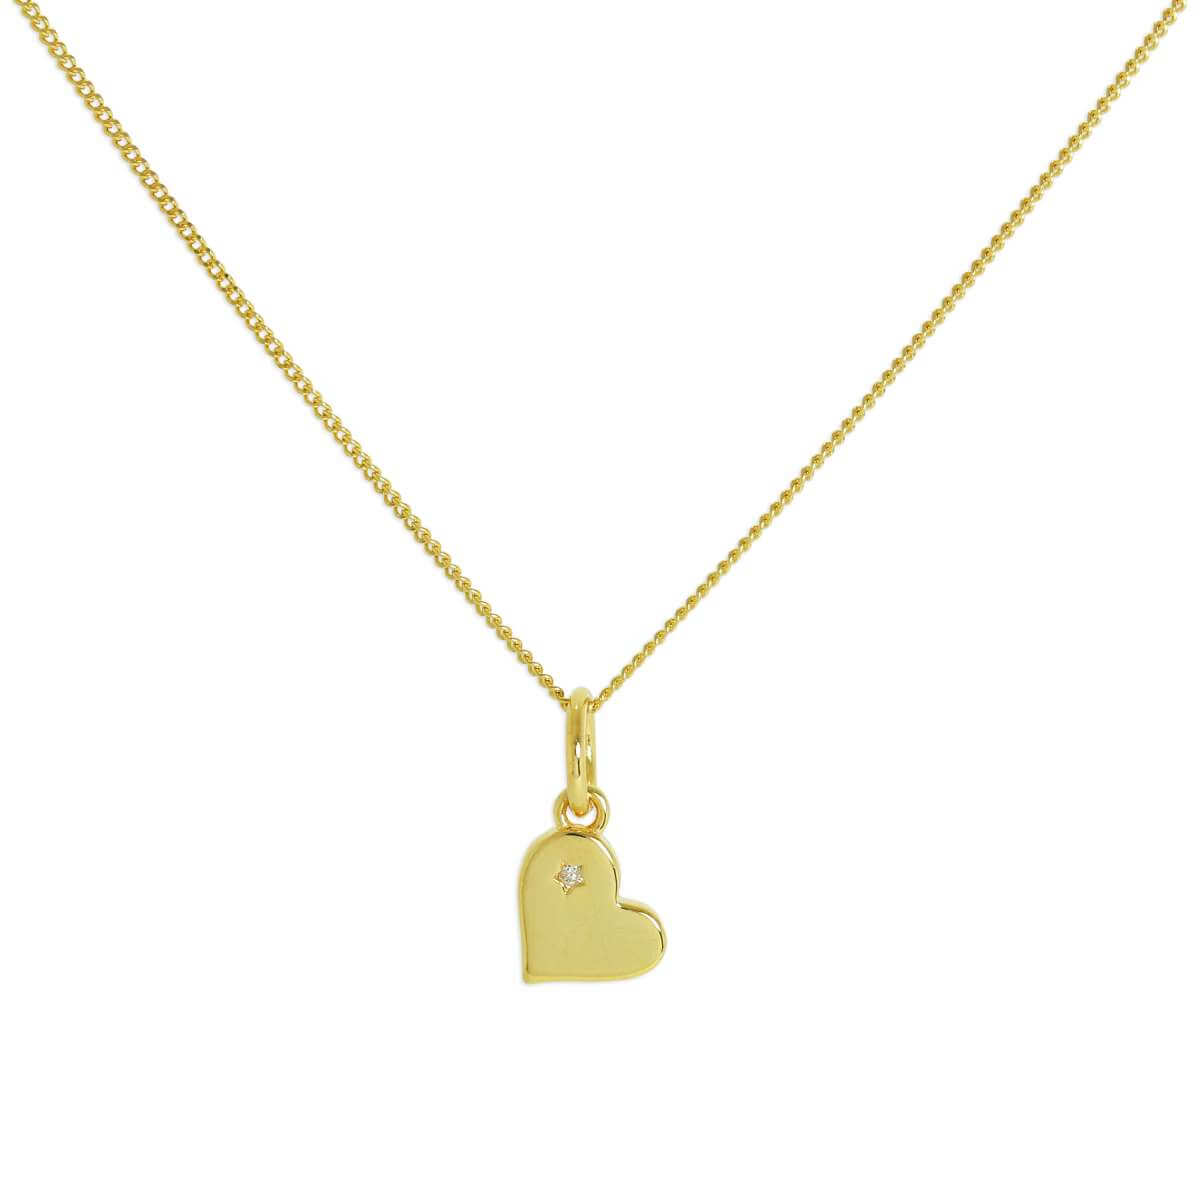 Gold Plated Sterling Silver & Genuine Diamond Heart Necklace 18 Inches Chain